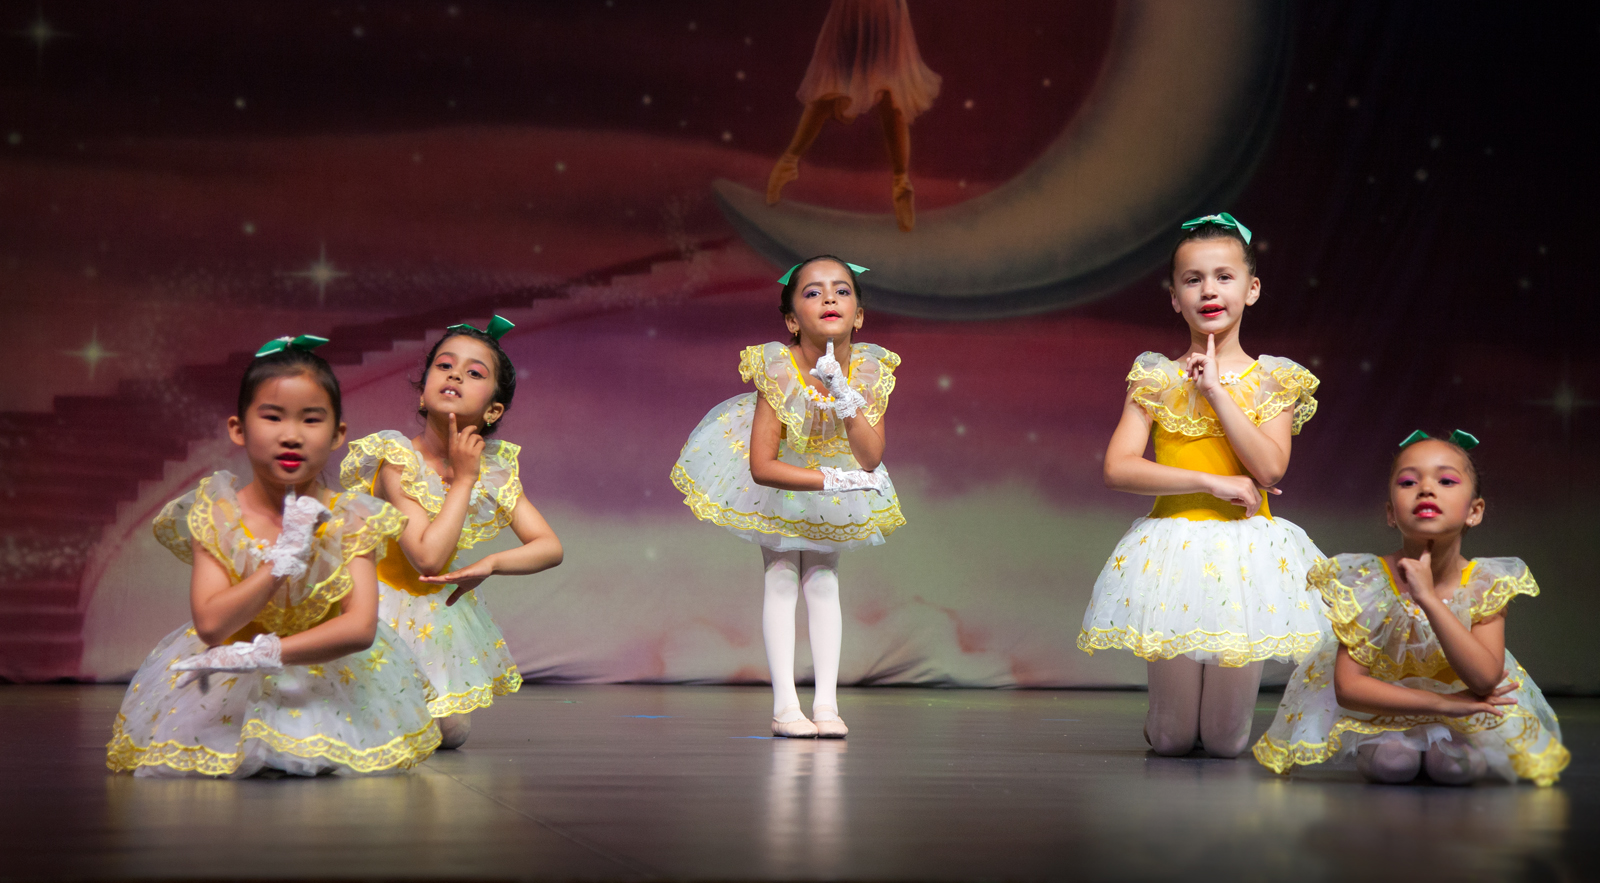 Music Lessons - Dance Classes - piano studio - ballet academy - Sunnyvale Cupertino Mountain View Milpitas